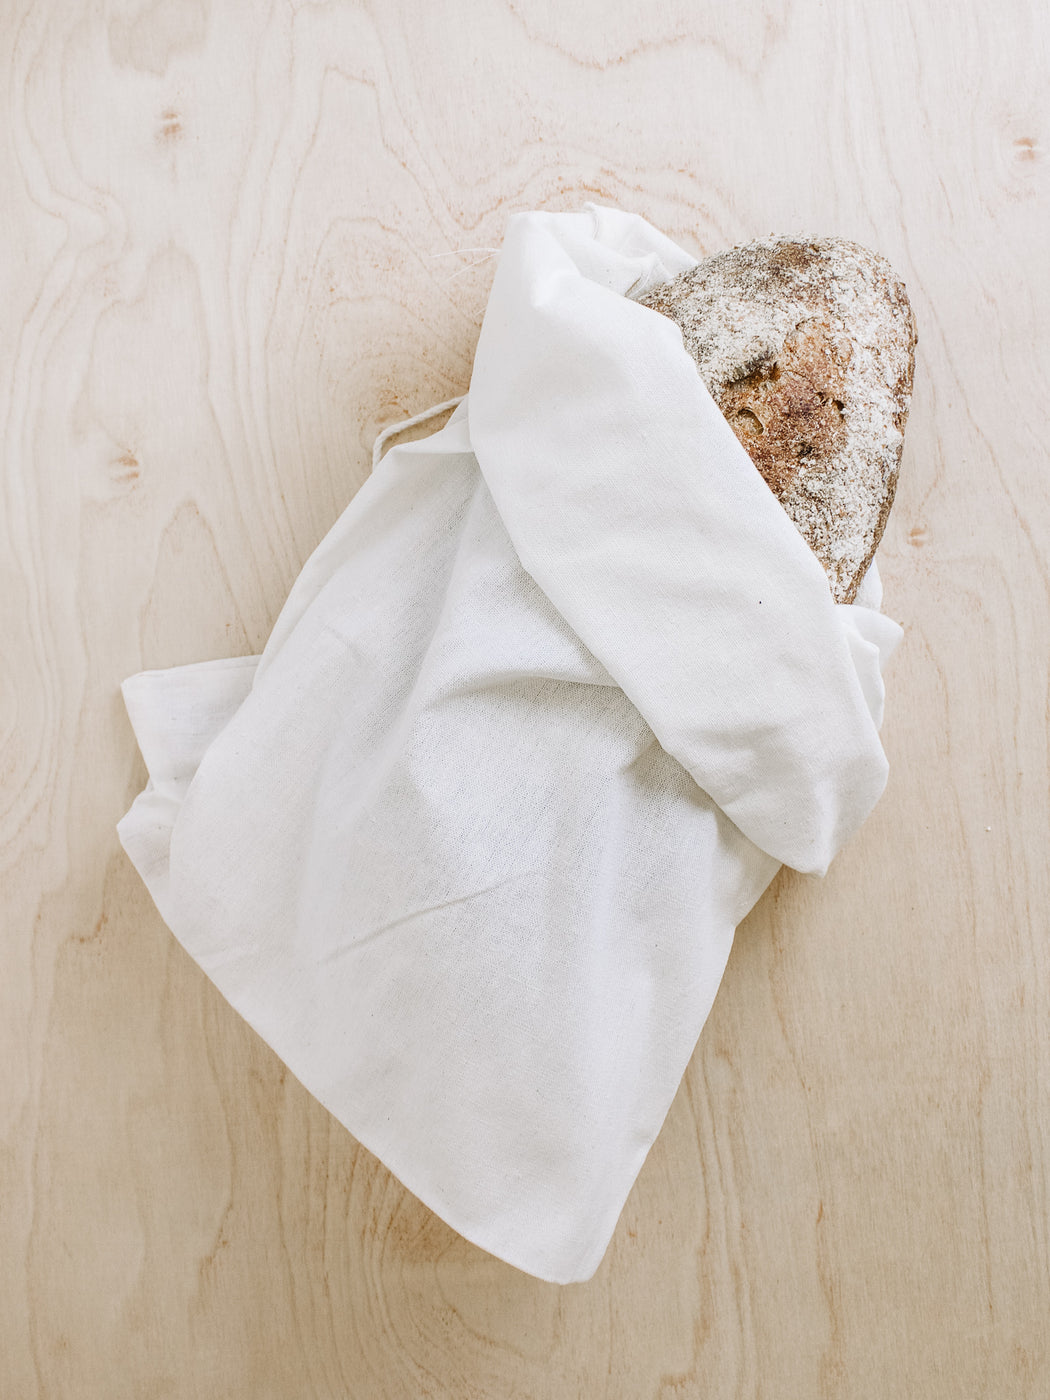 Lore General Supplies- Muslin Bread Bag